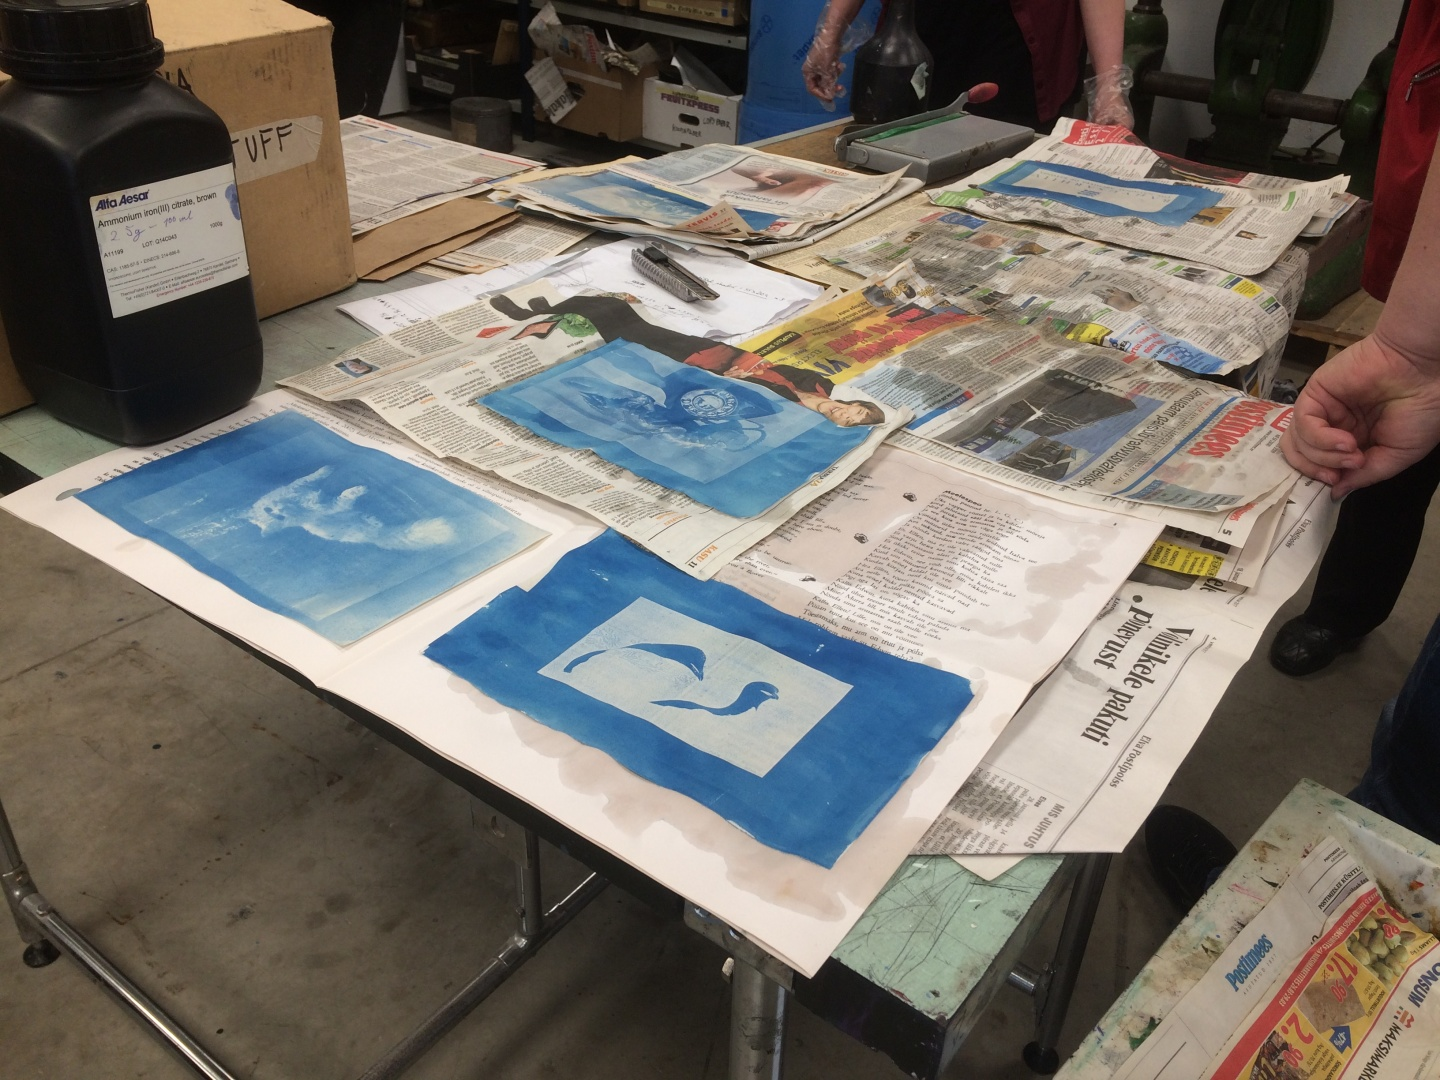 fig 29. Drying cyanotypes on a heap of newspapers.